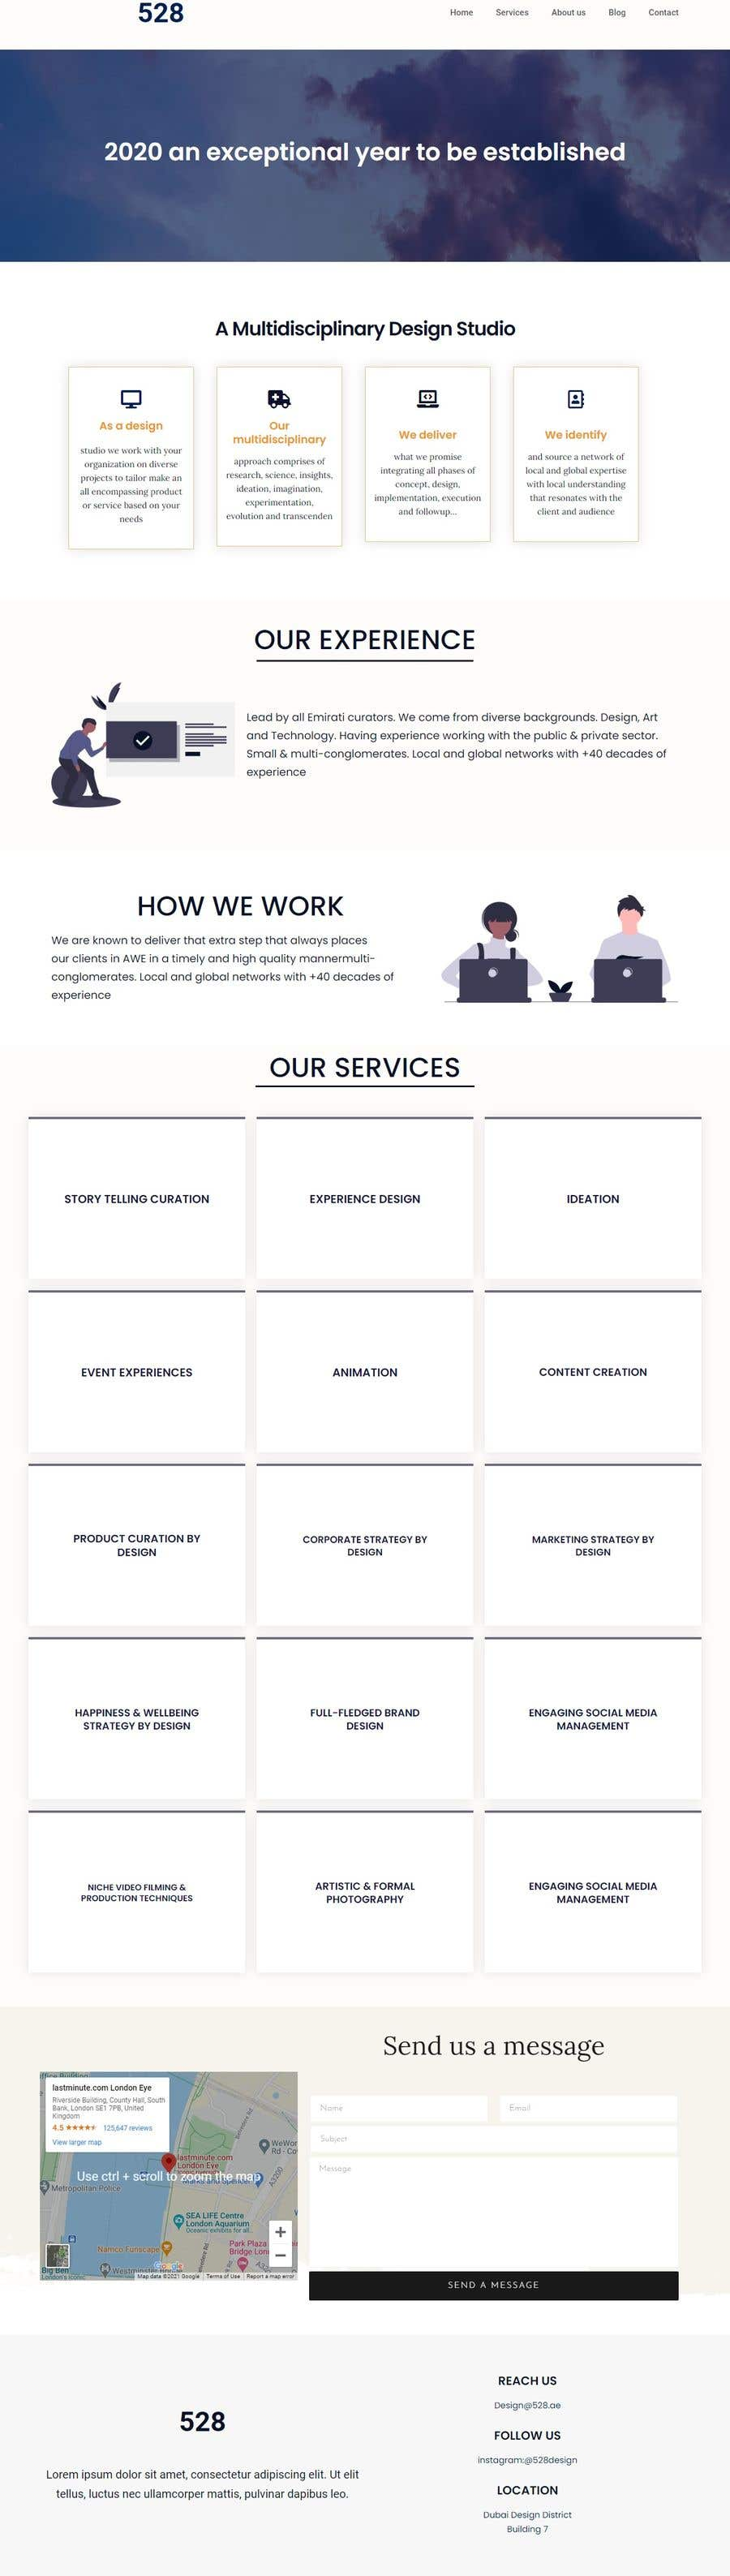 Bài tham dự cuộc thi #                                        31                                      cho                                         I need a Landing Page Website for Small Business Stores